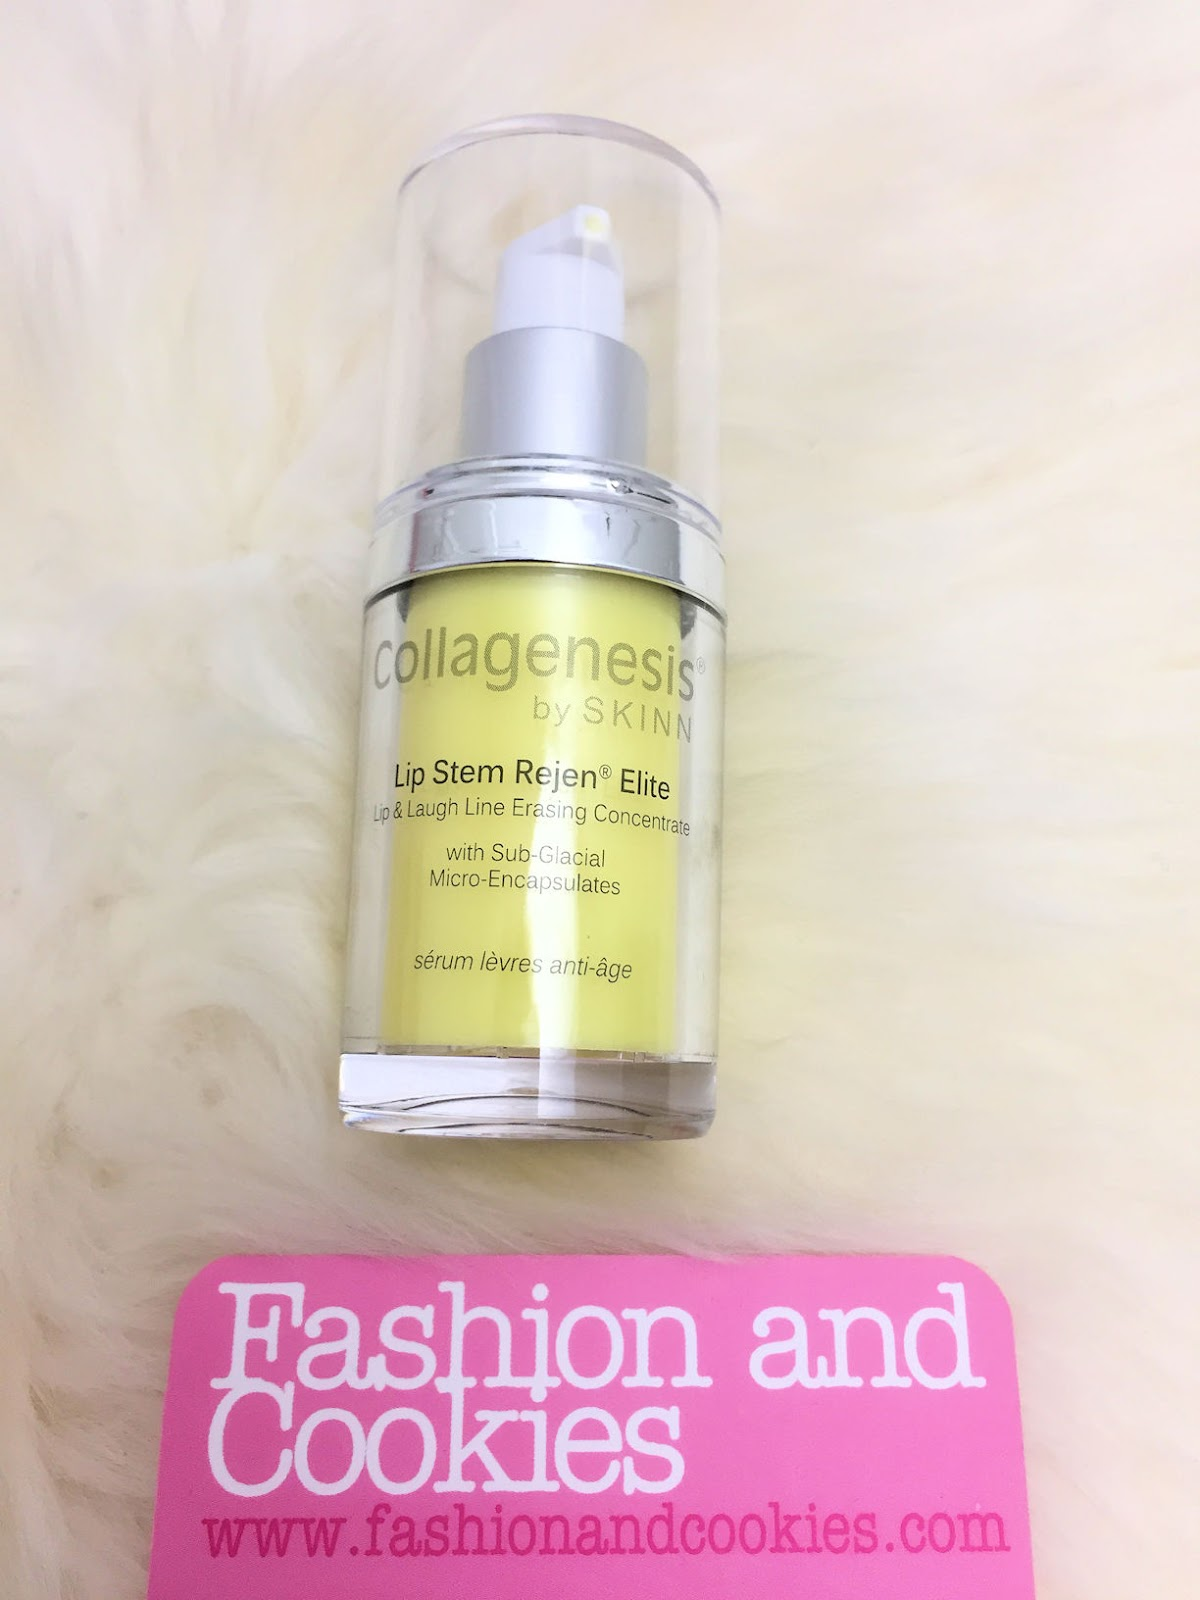 Siero Labbra Stem Rejen 15 ml SKINN Collagenesis on Fashion and Cookies beauty blog, beauty blogger